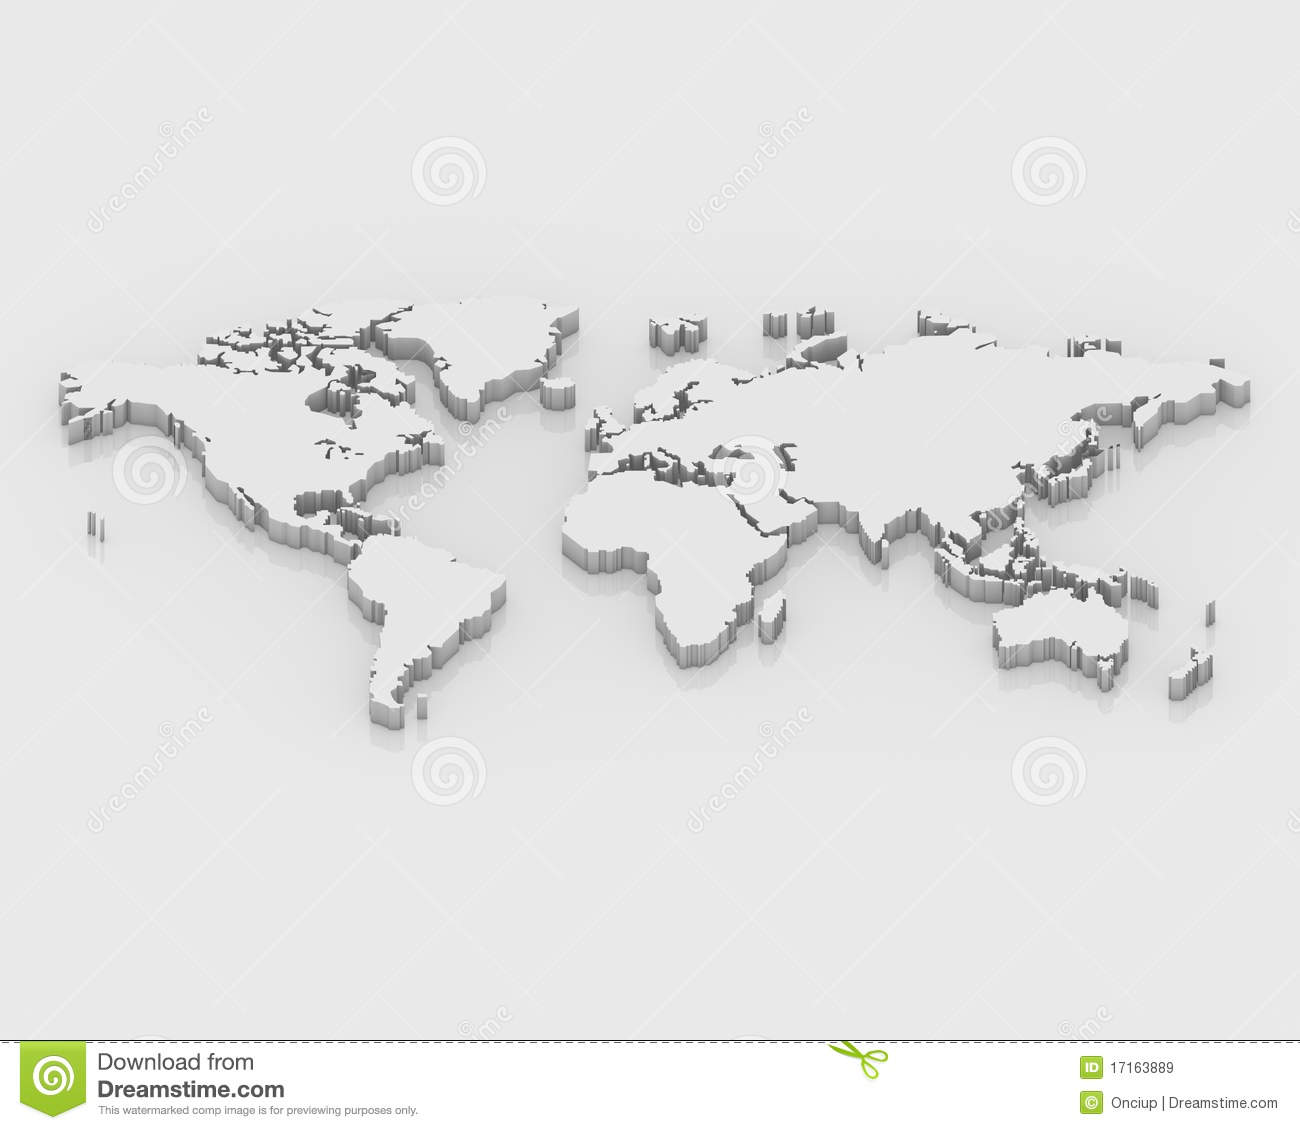 3d world map free download stl zoo map a 3d map world stock illustration illustration of australia 3d map world 17163889 royalty free stock gumiabroncs Choice Image